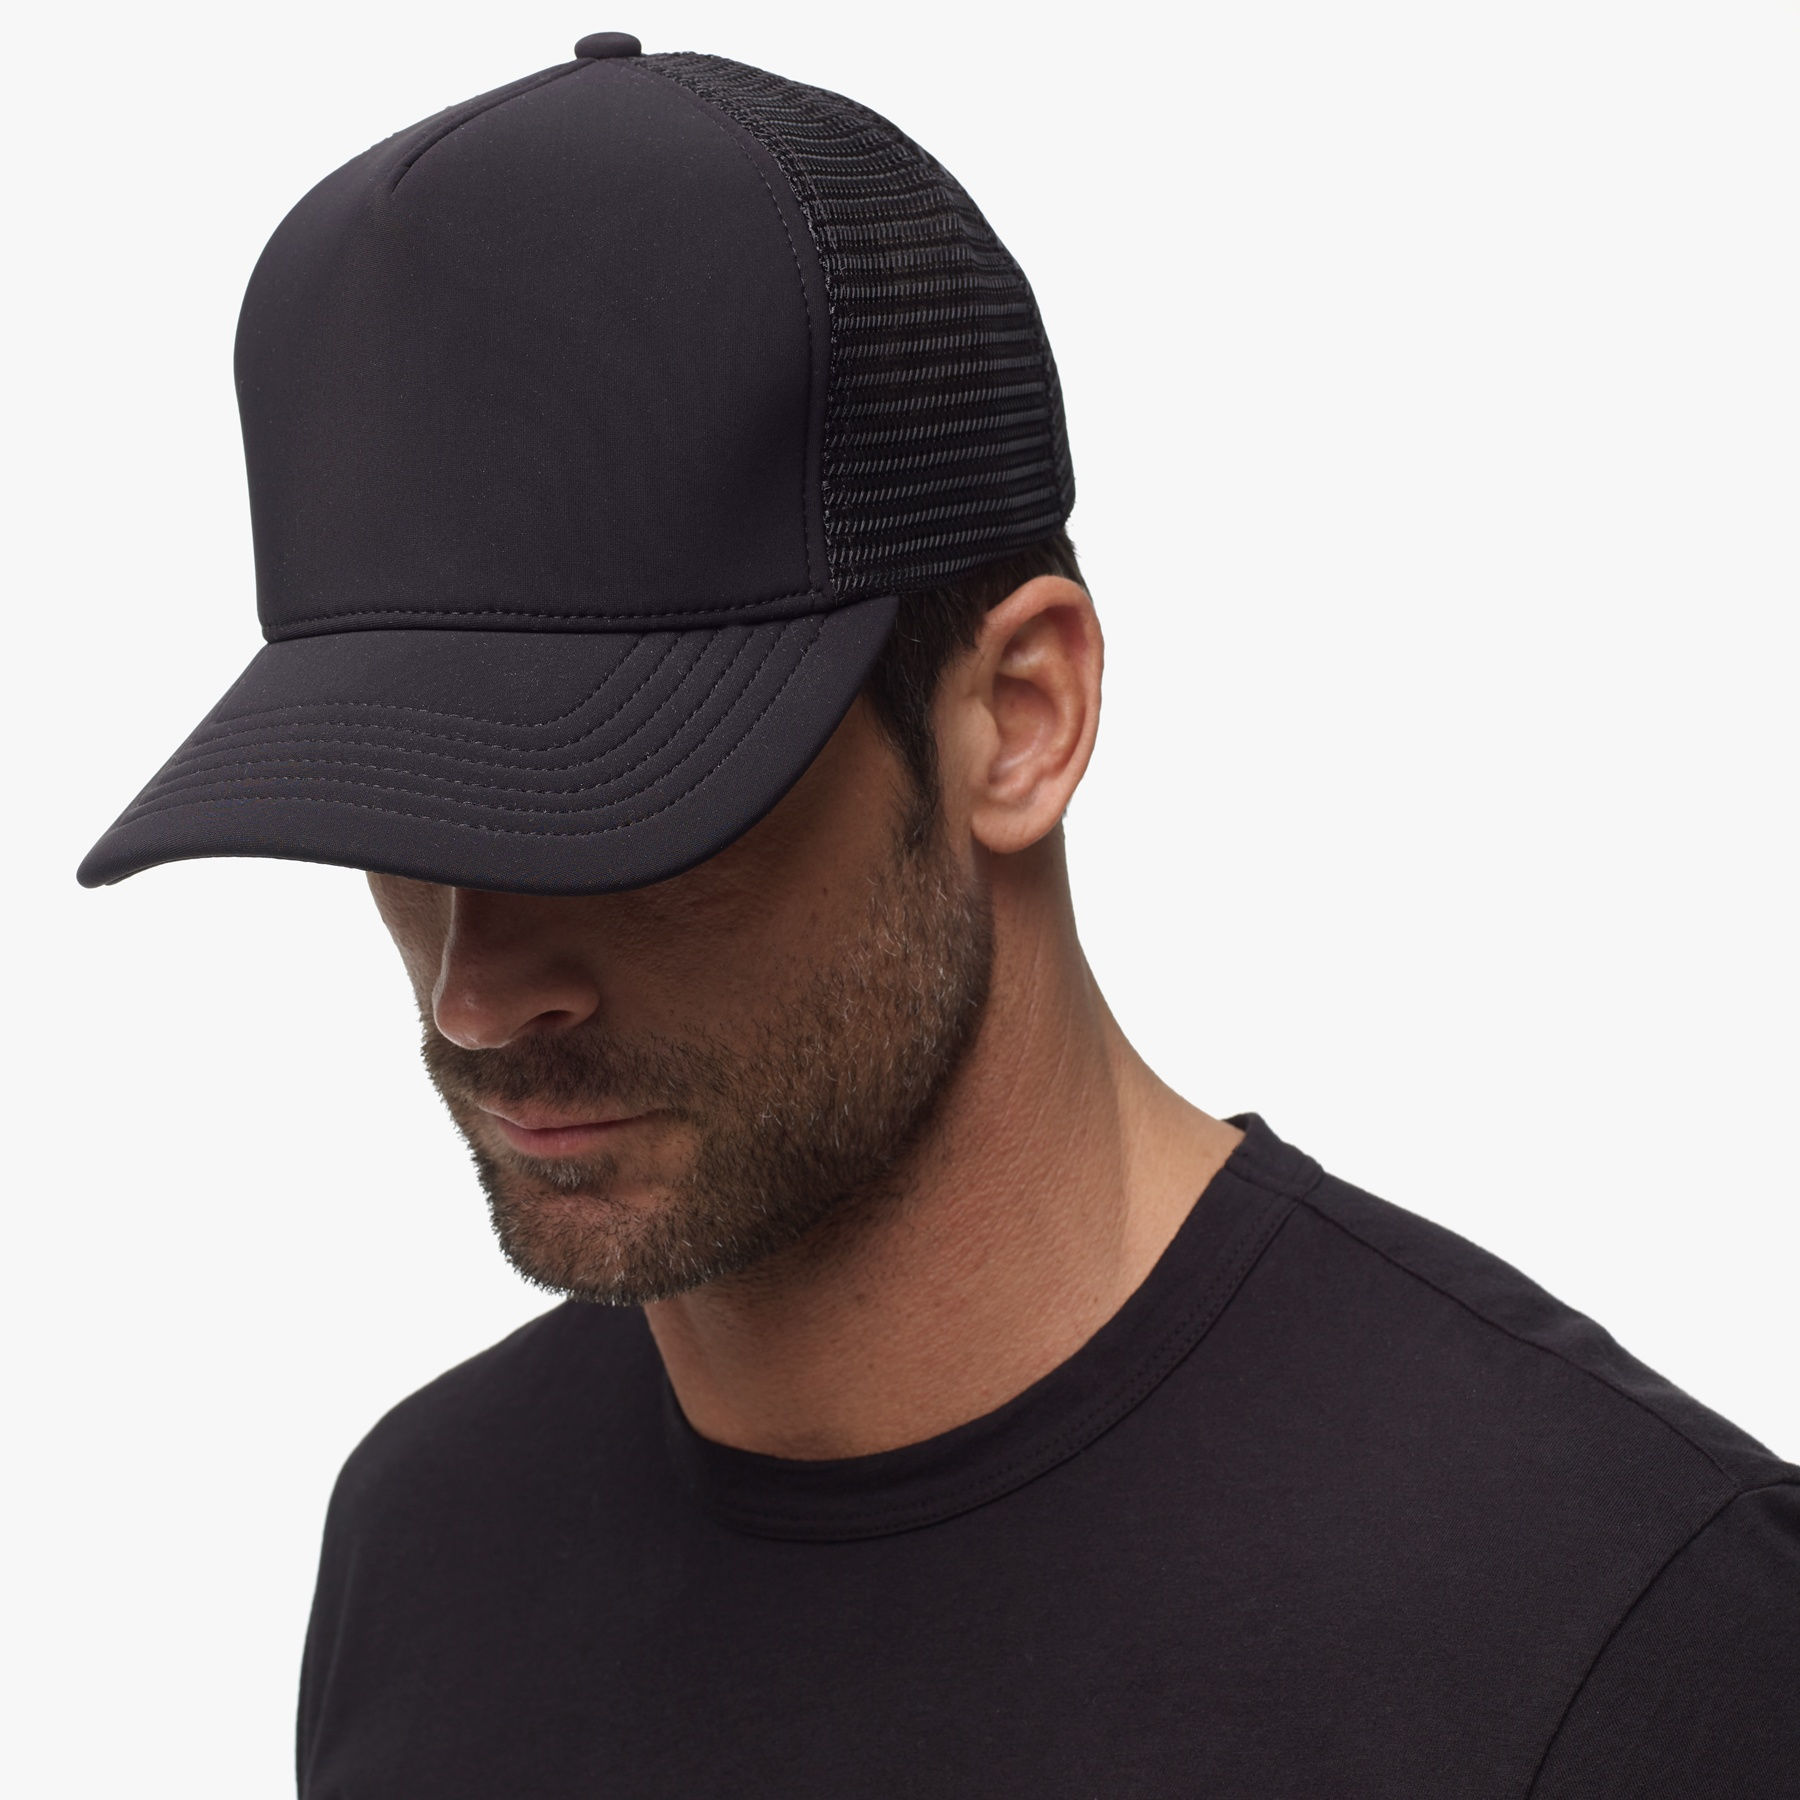 How to shrink your trucker cap?